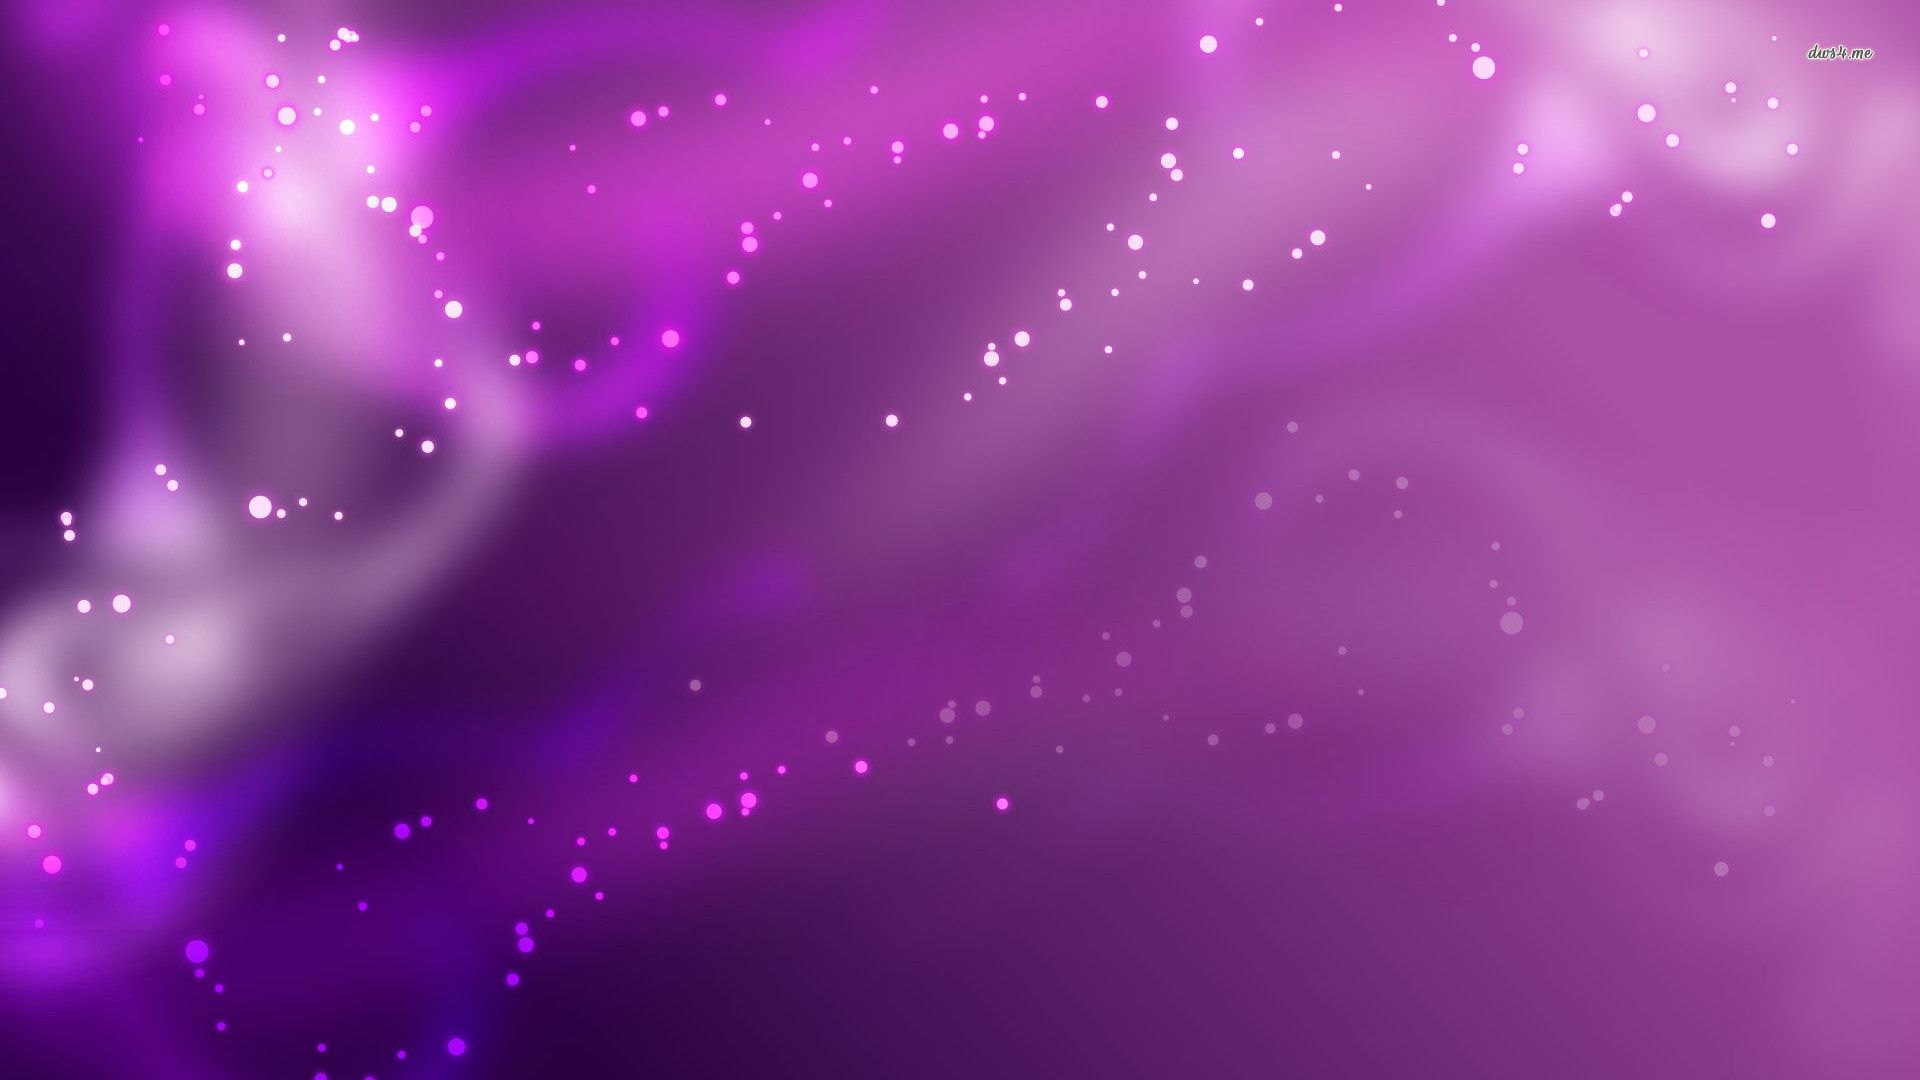 Free Download Light Purple Abstract Wallpaper Background 1